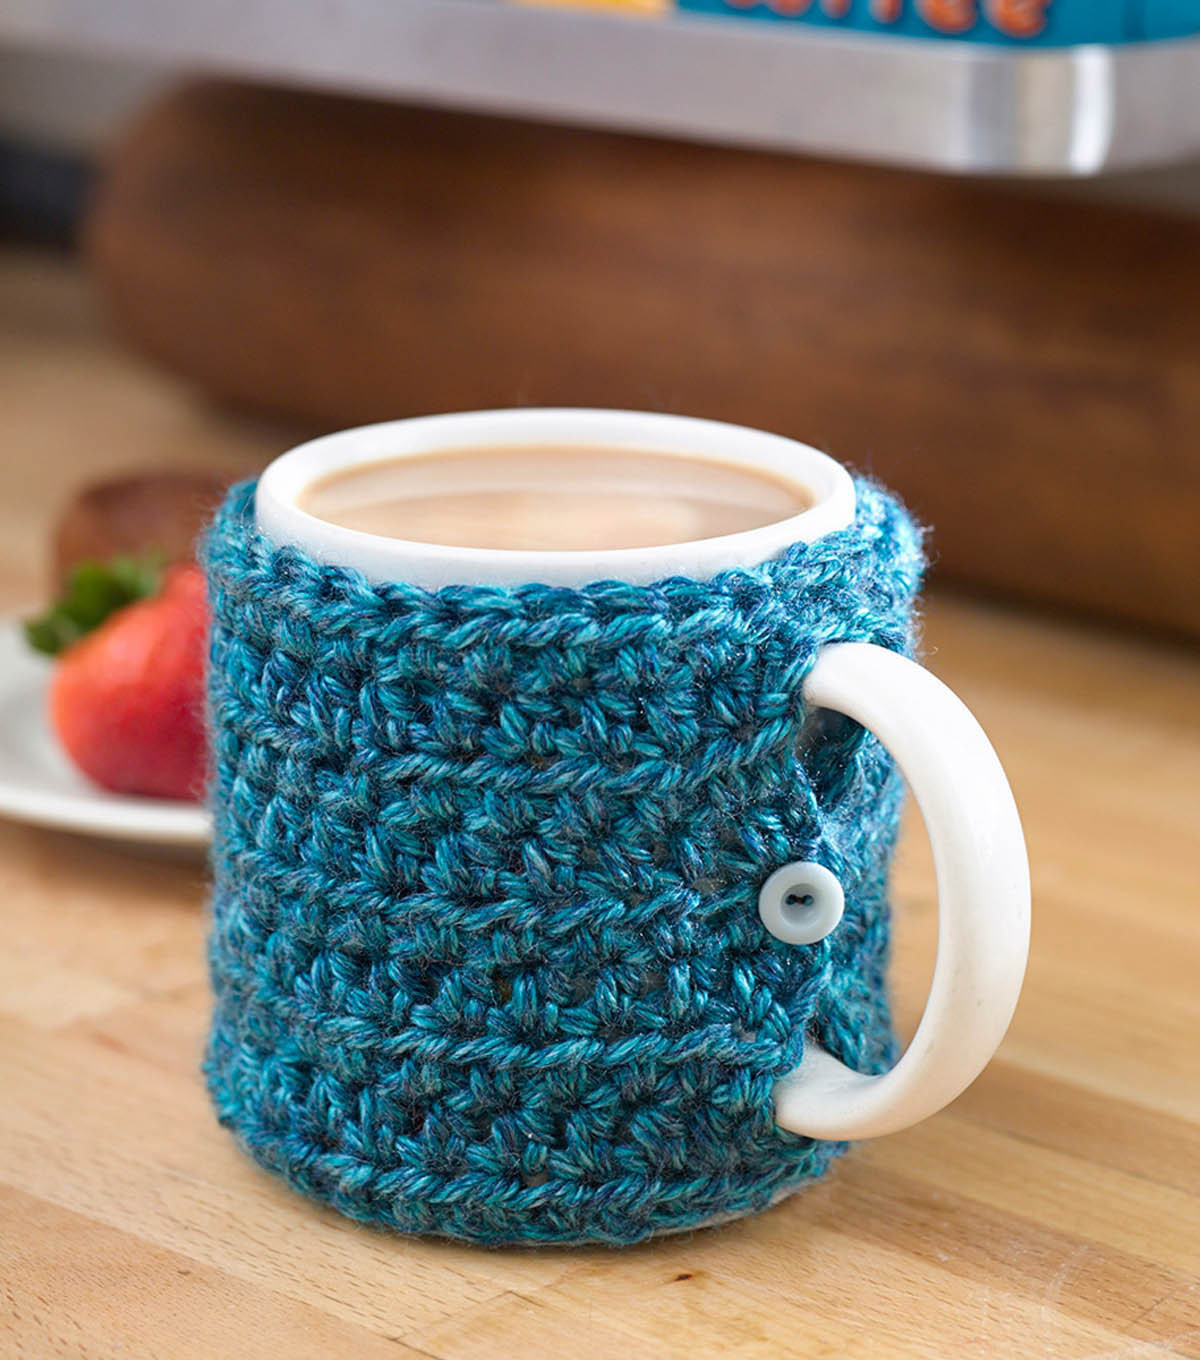 Crochet Coffee Cup Cozy Best Of Craftdrawer Crafts Free Easy to Crochet Mug Cozy Patterns Of Crochet Coffee Cup Cozy Fresh 20 Cool Crochet Coffee Cozy Ideas & Tutorials Hative